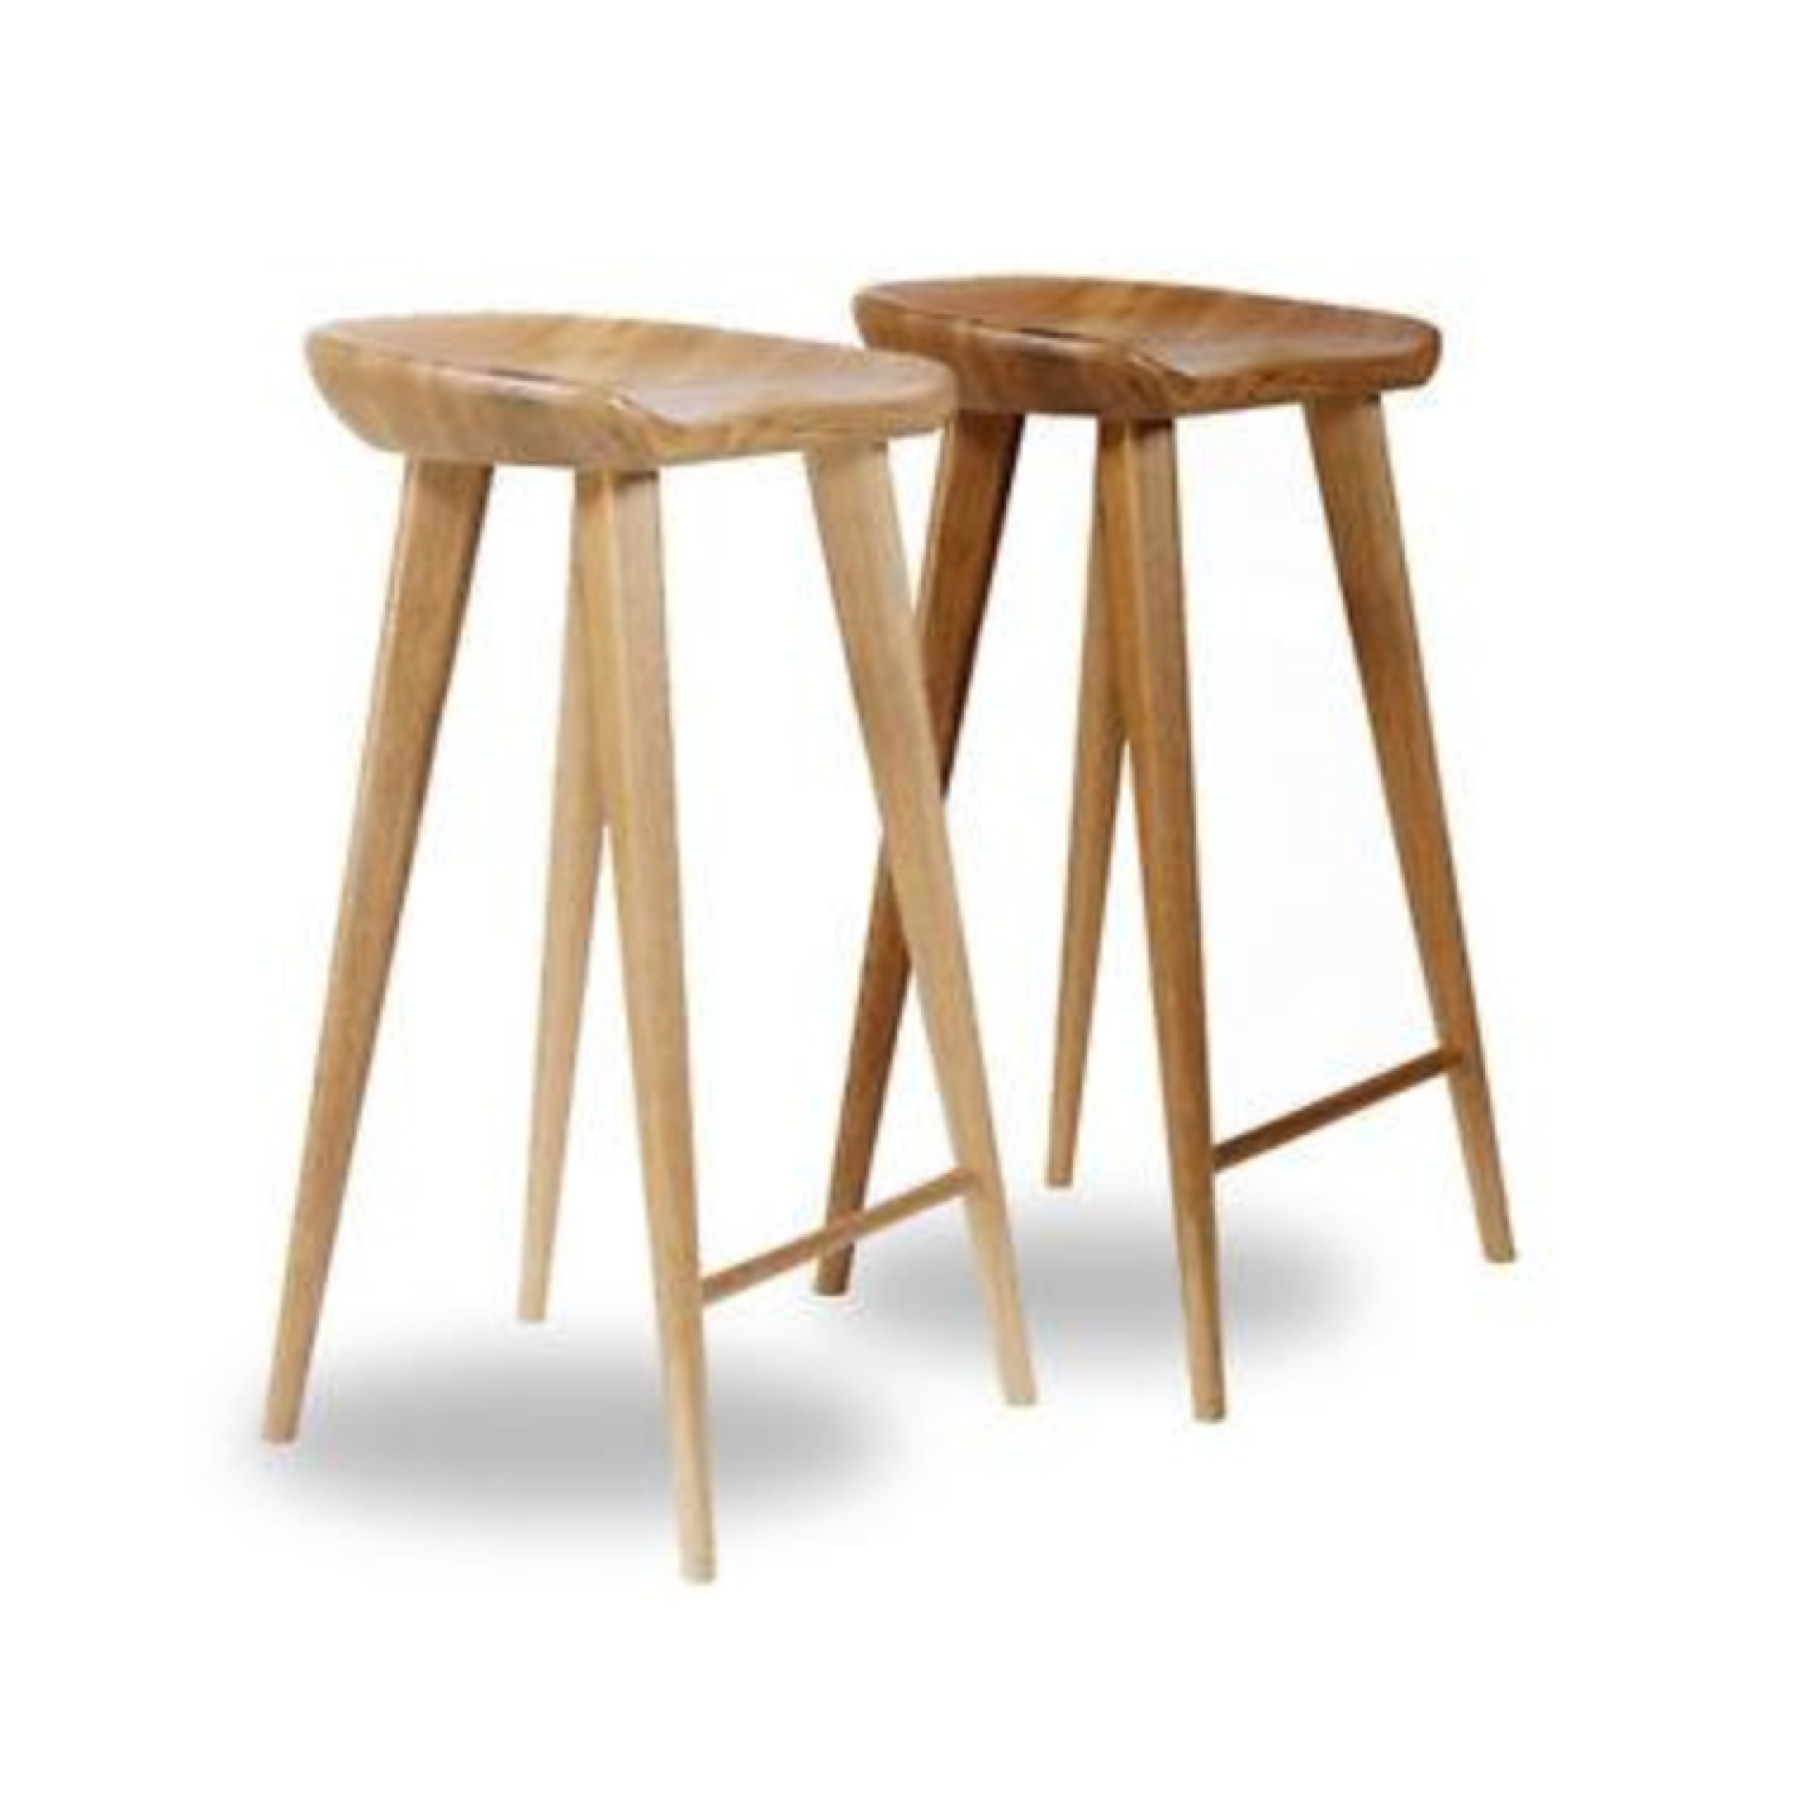 Wood Bar Stools Made In Malaysia Bar Stools : Bar stool supplier JF 302 from stools.beautytipsqueen.com size 1800 x 1800 jpeg 192kB